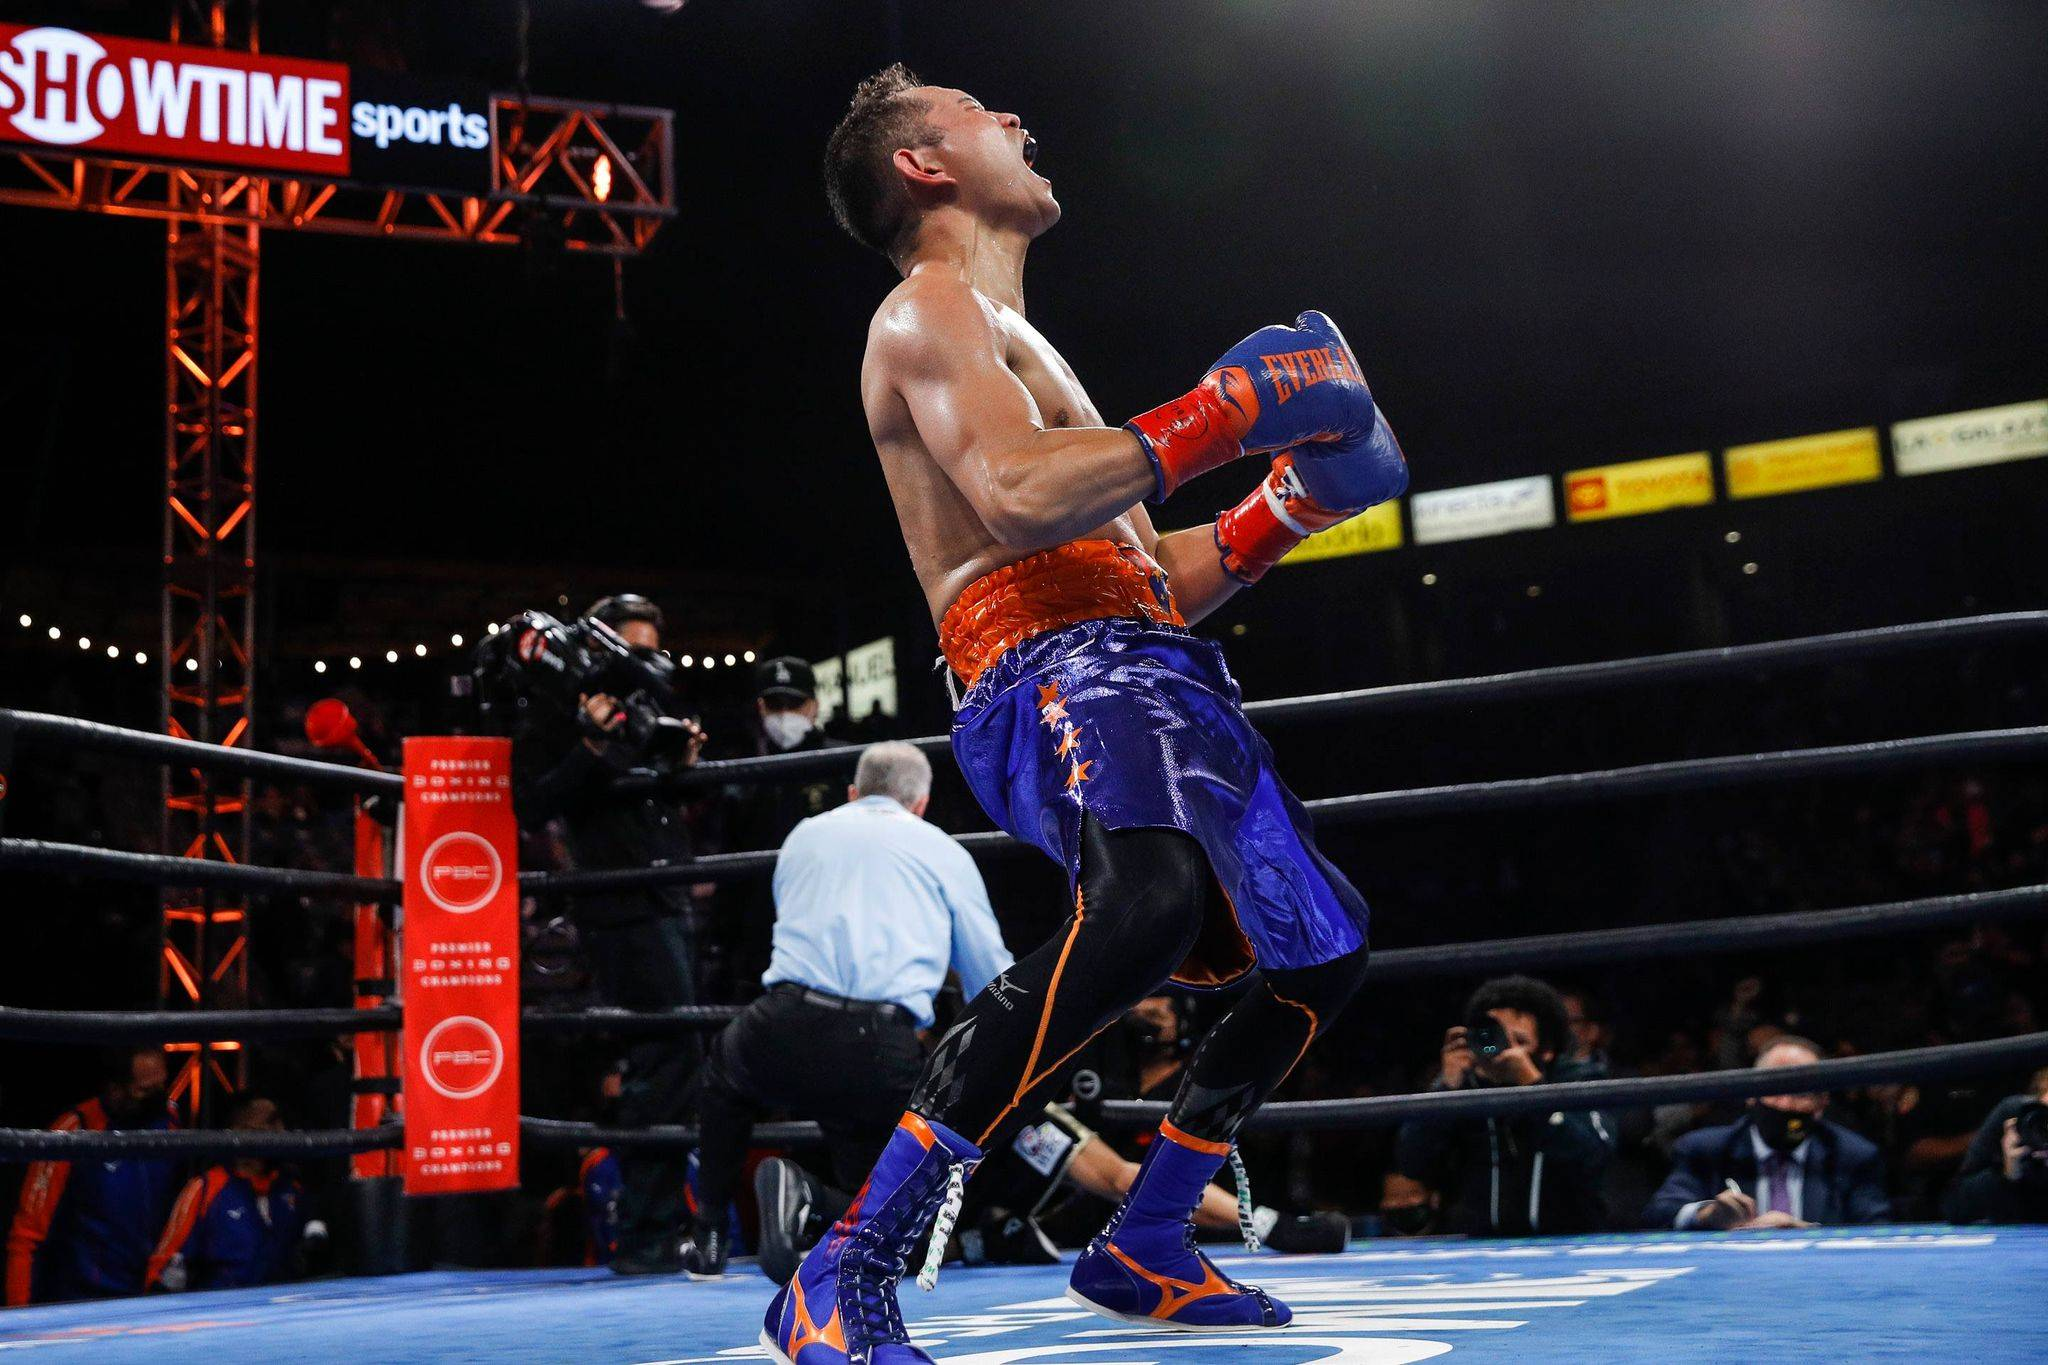 Nonito-Donaire-def-Nordine-Oubaali Donaire challenges Inoue to sequel of 2019 classic Boxing News  - philippine sports news